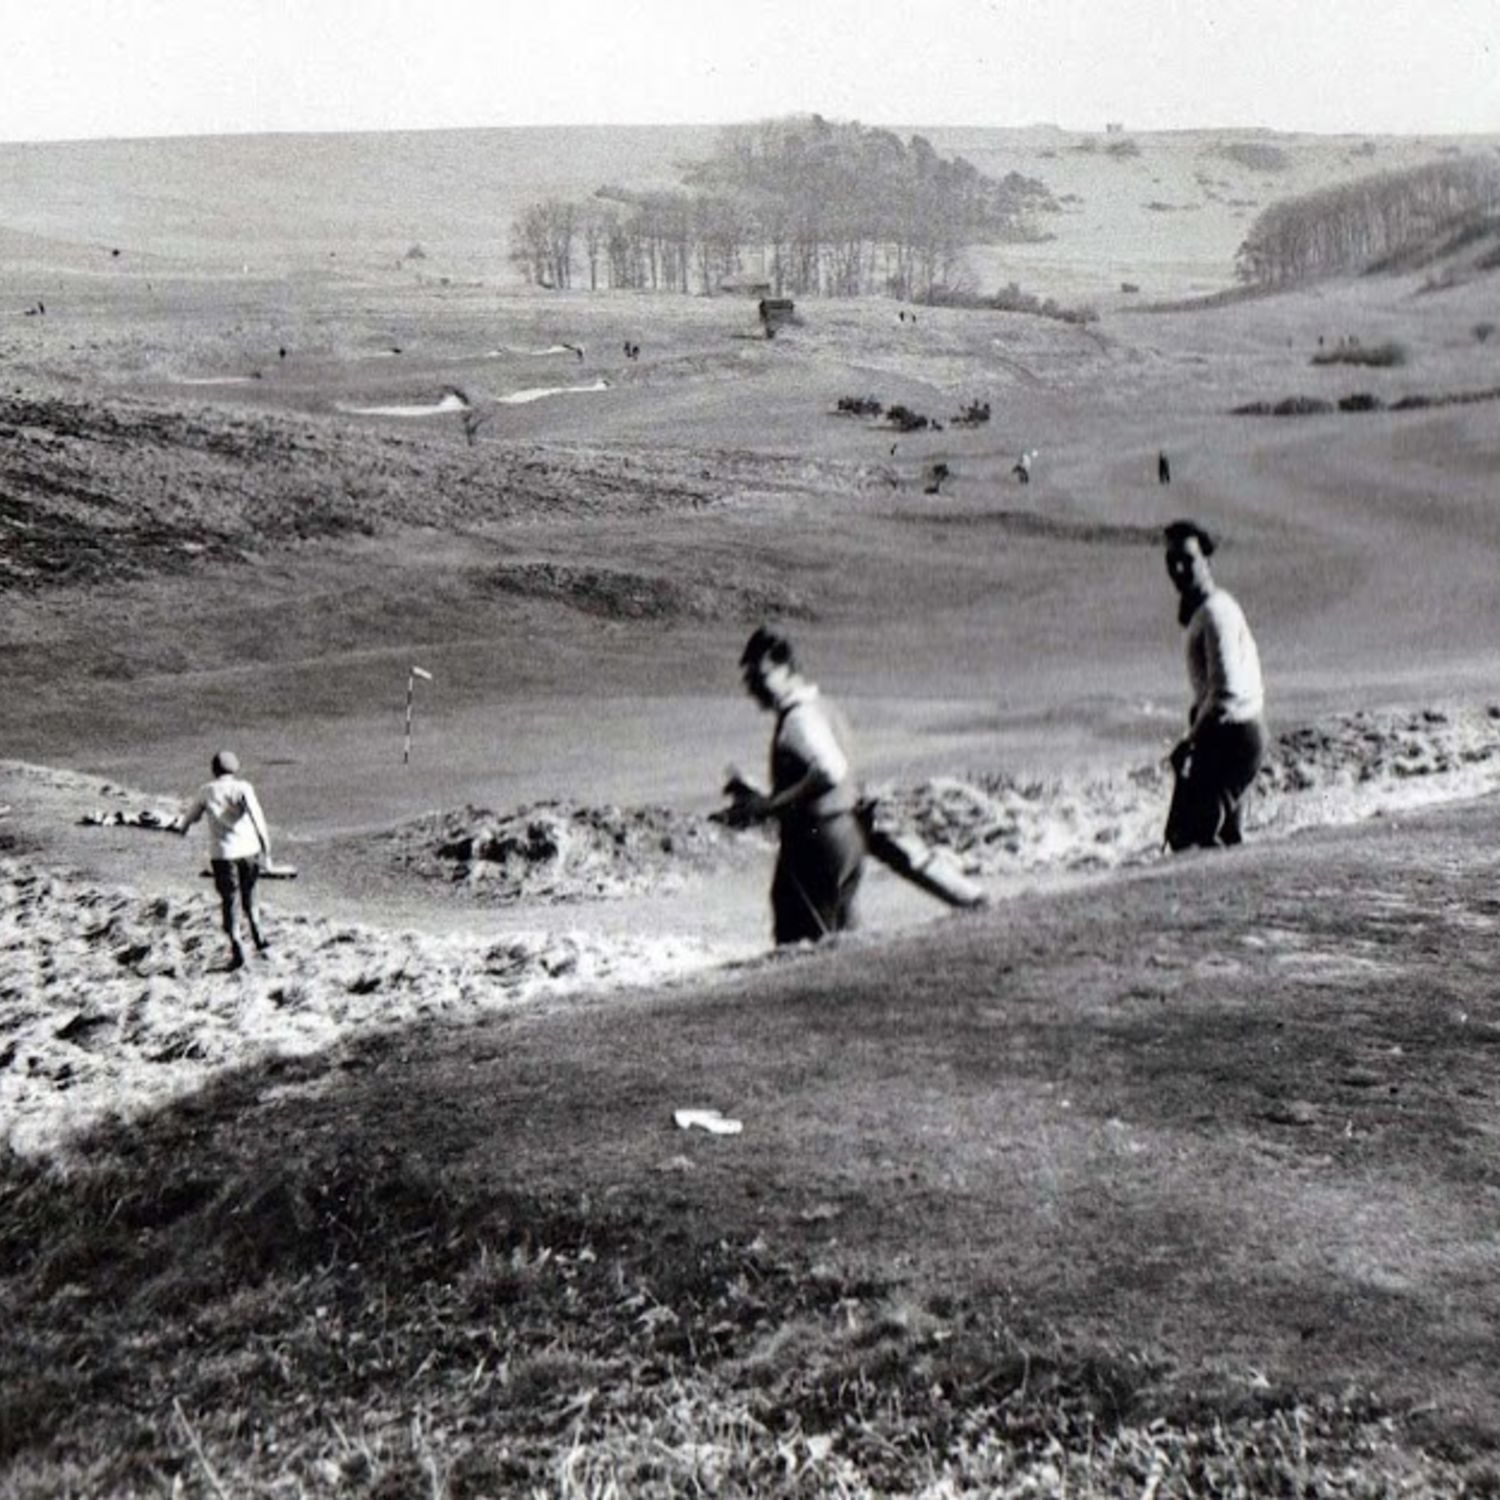 1947 The 9th tee lower, with the 8th green and fairway beyond